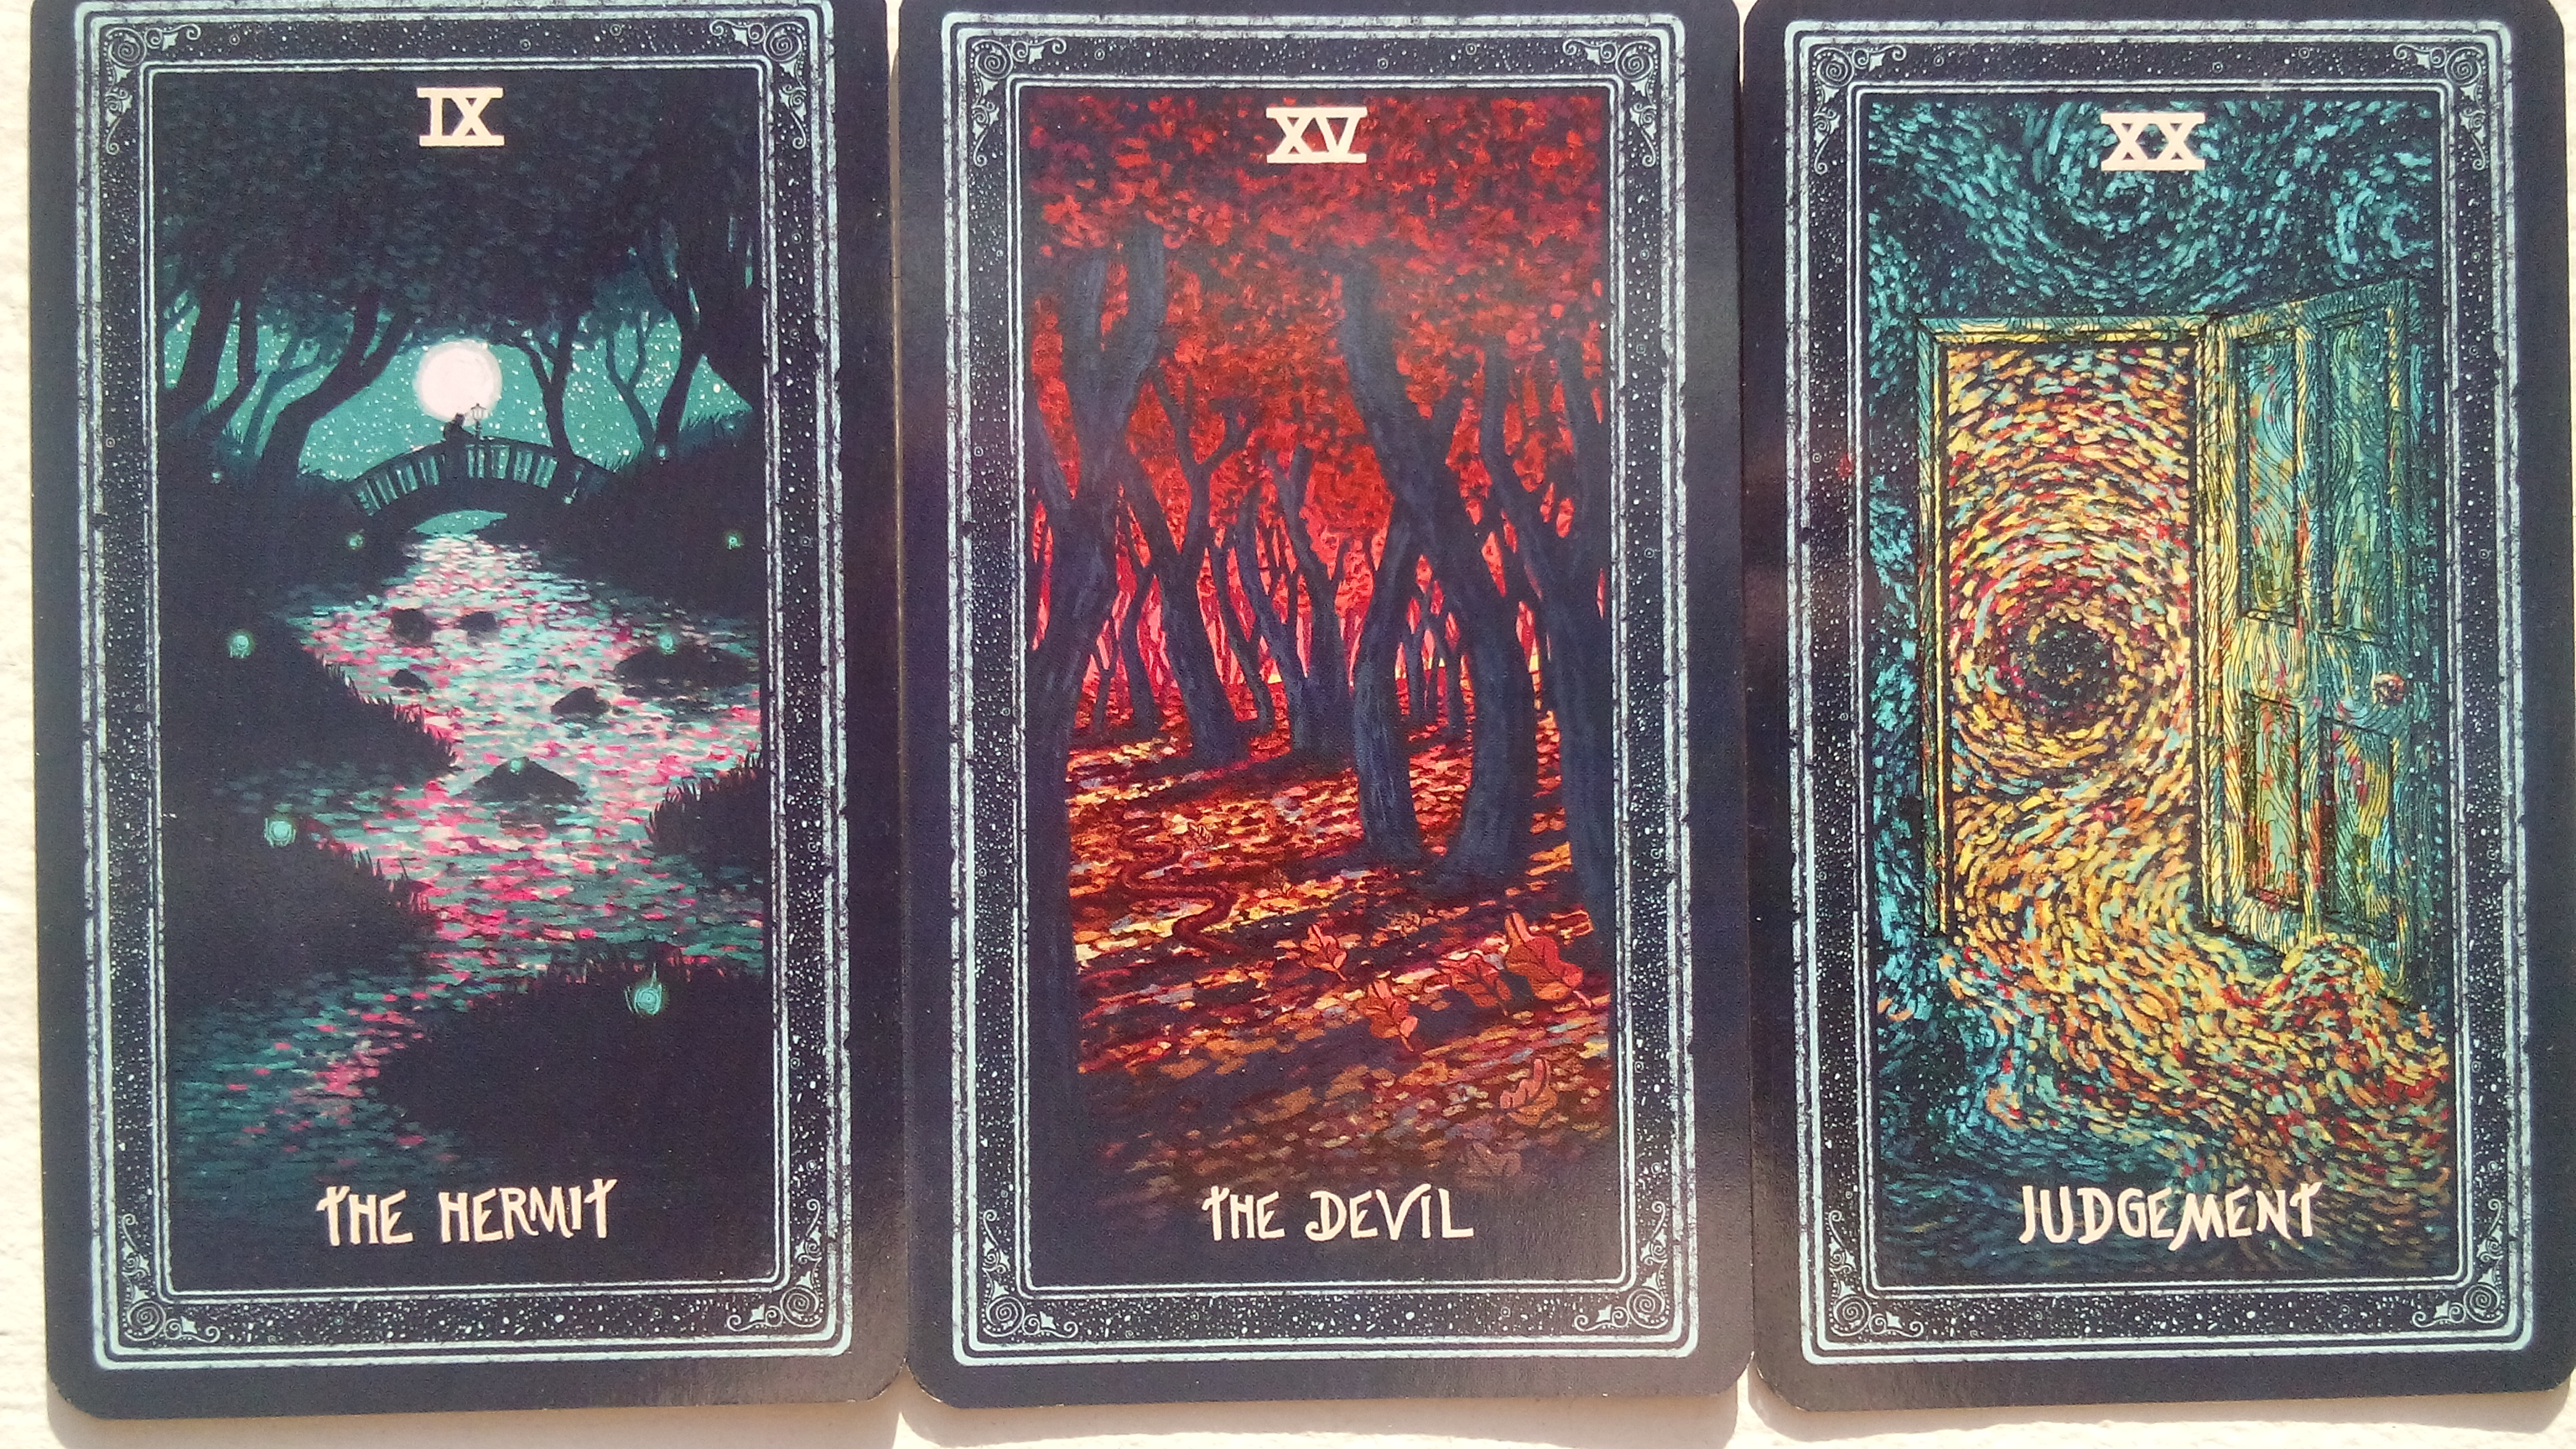 A Review of the Prisma Visions Tarot | Jack of Wands Tarot